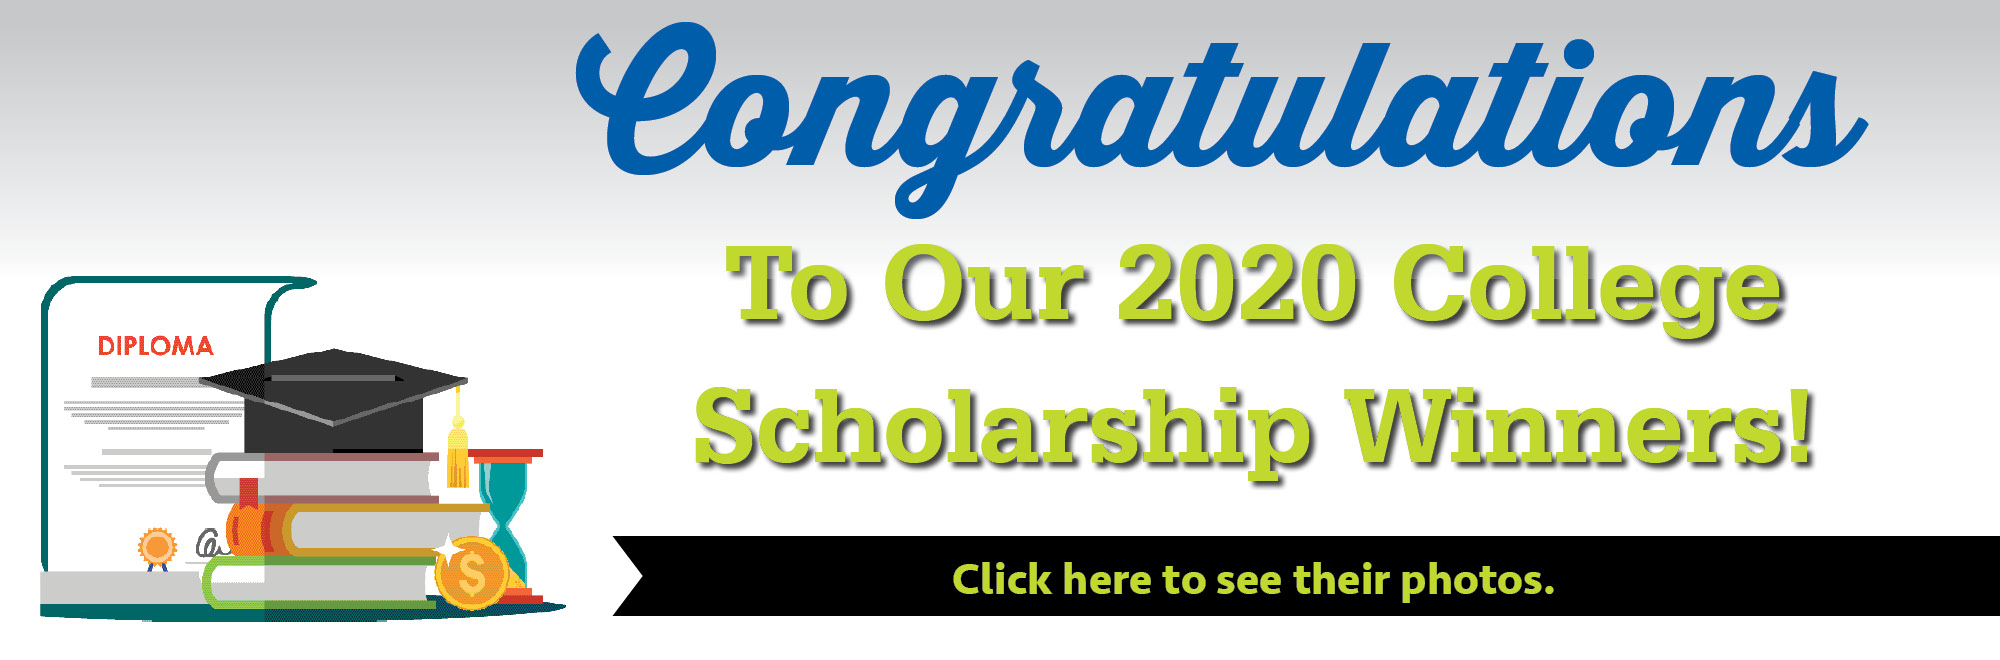 Congratulations to our 2020 College Scholarship winners!